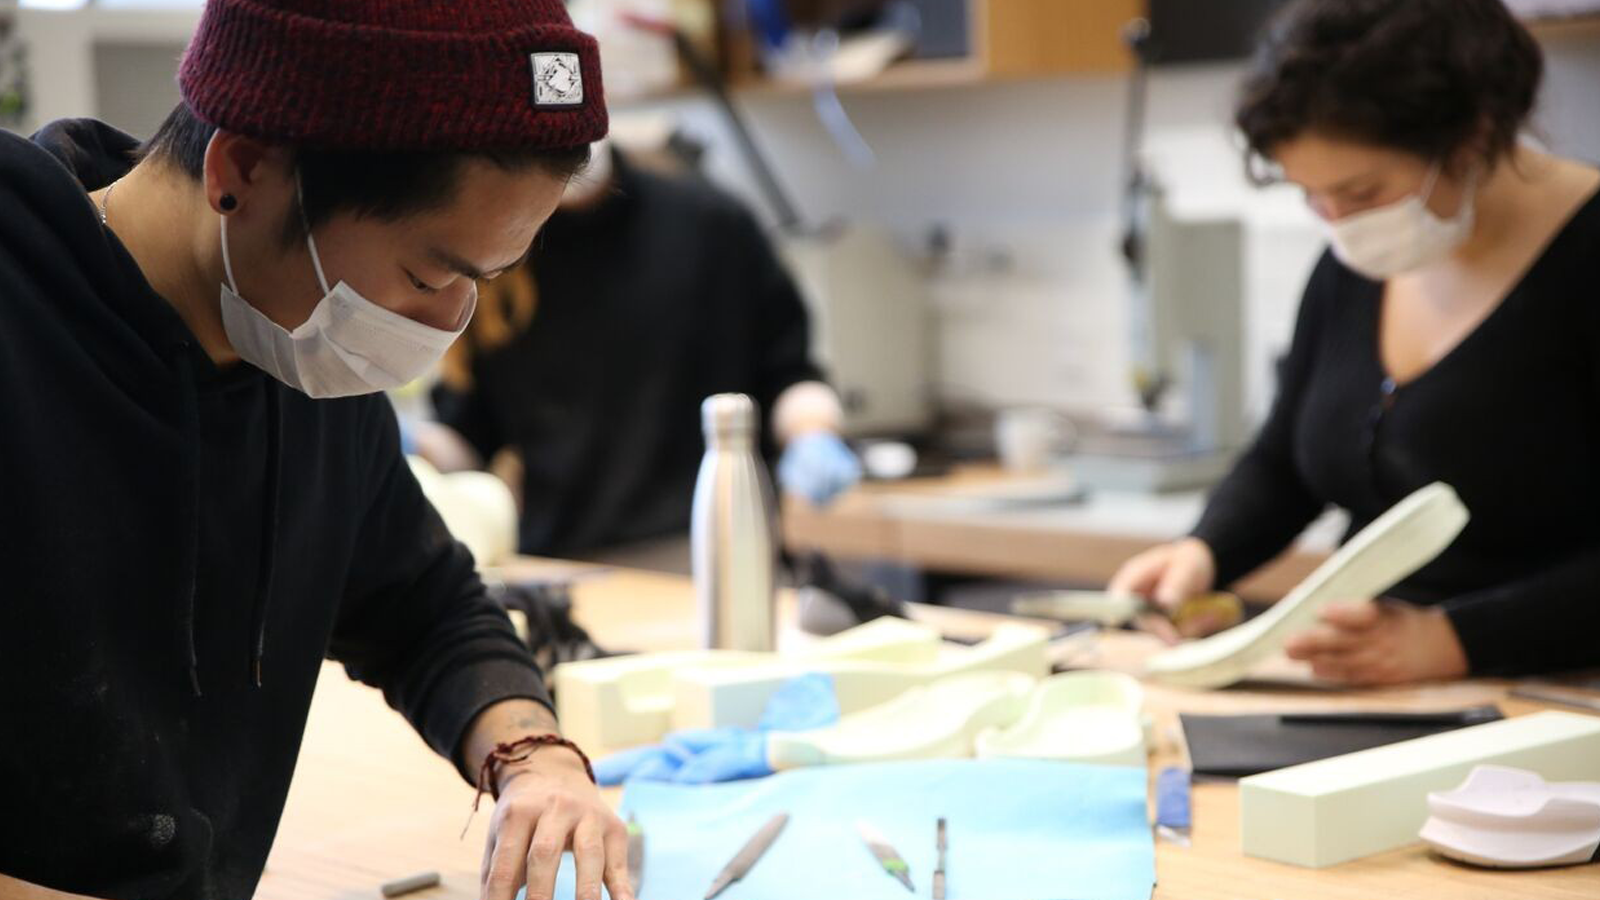 Cultivating creativity through space and collaboration